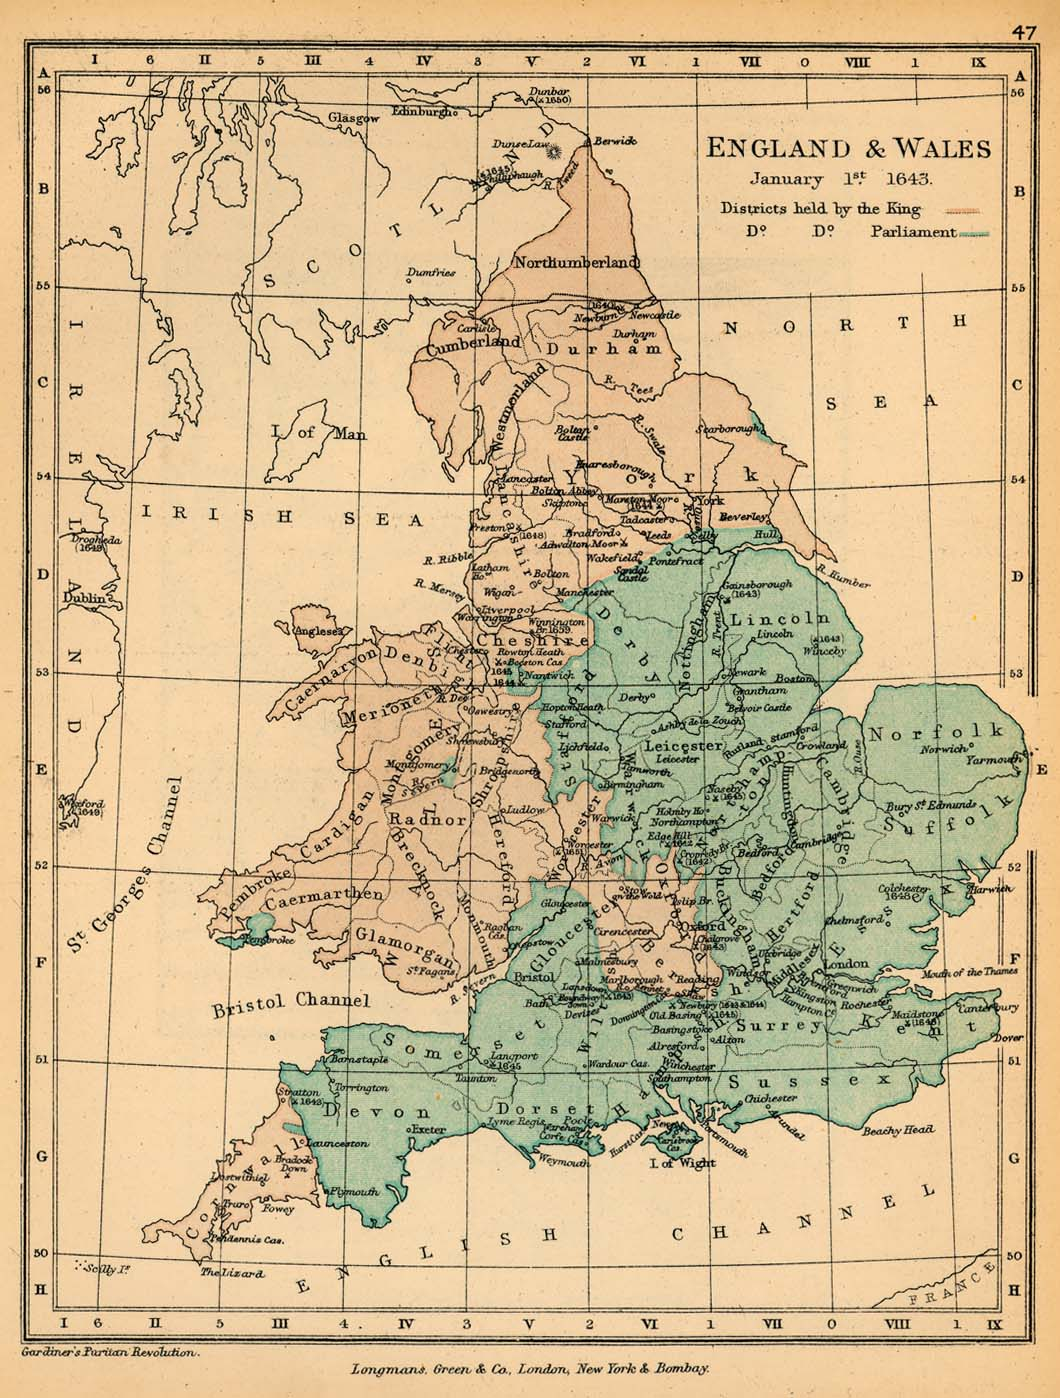 Map of England and Wales January 1, 1643